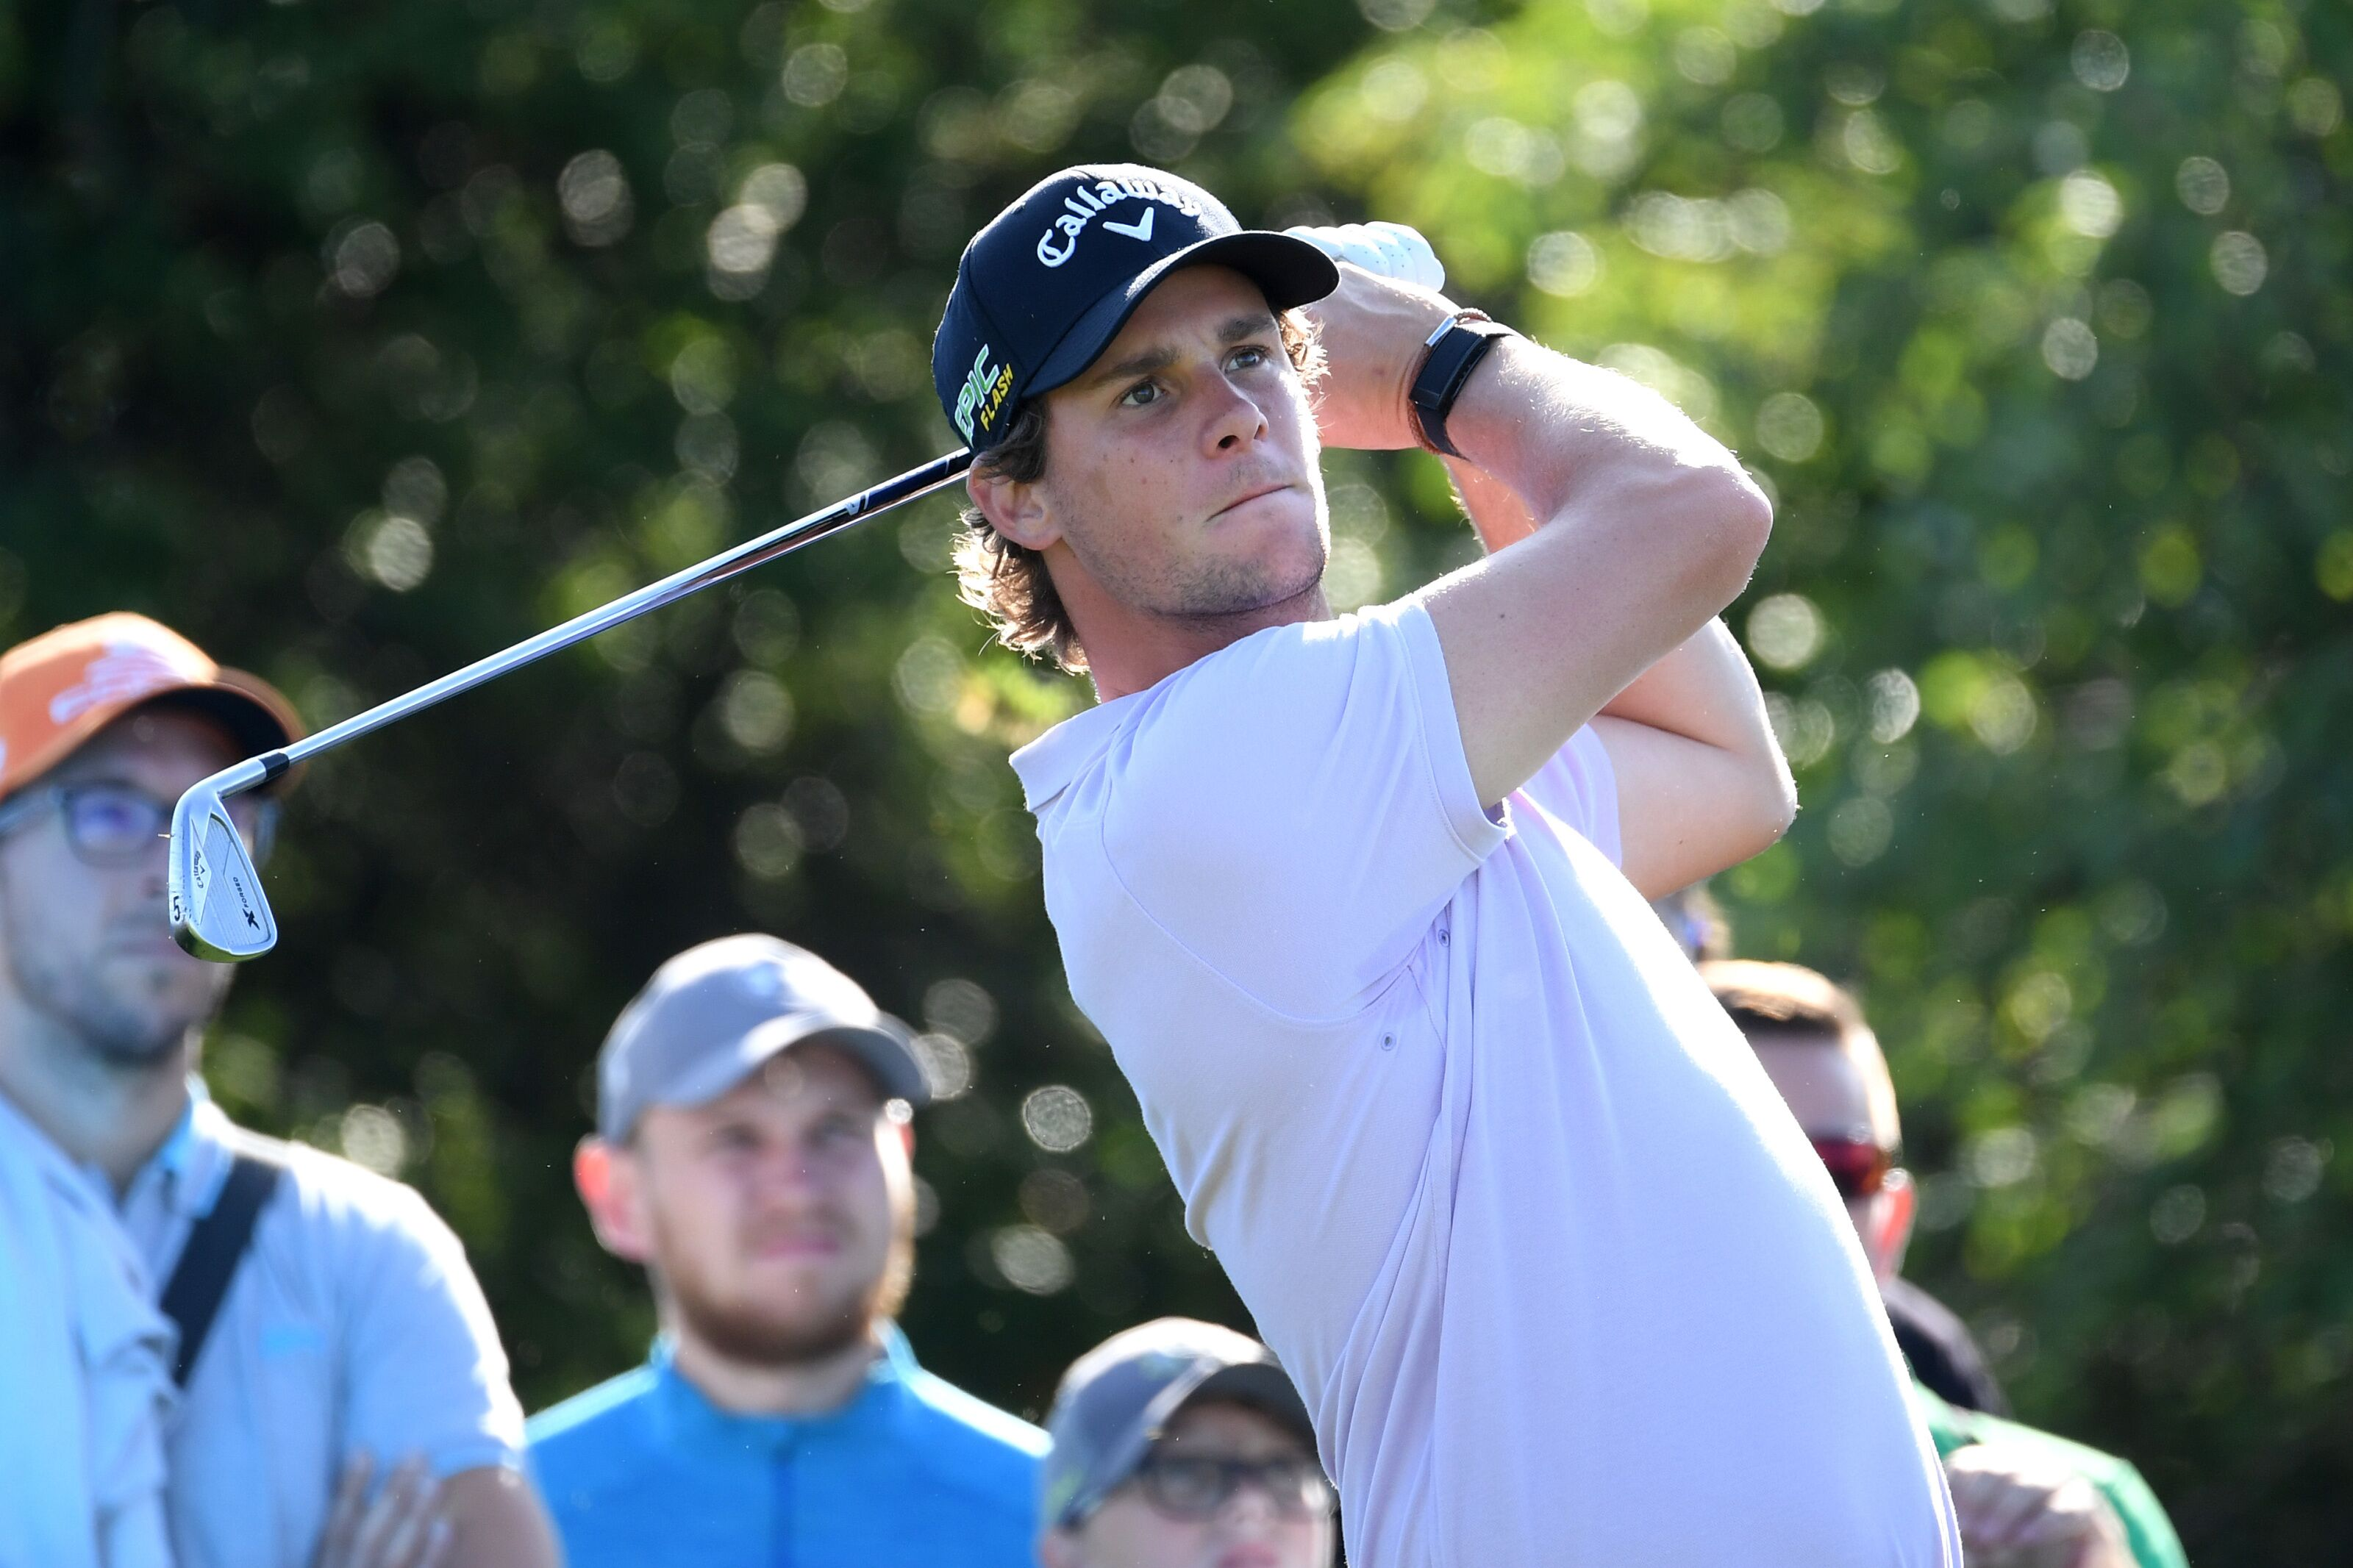 2019 Czech Masters: Thomas Pieters hunts second title at Albatross